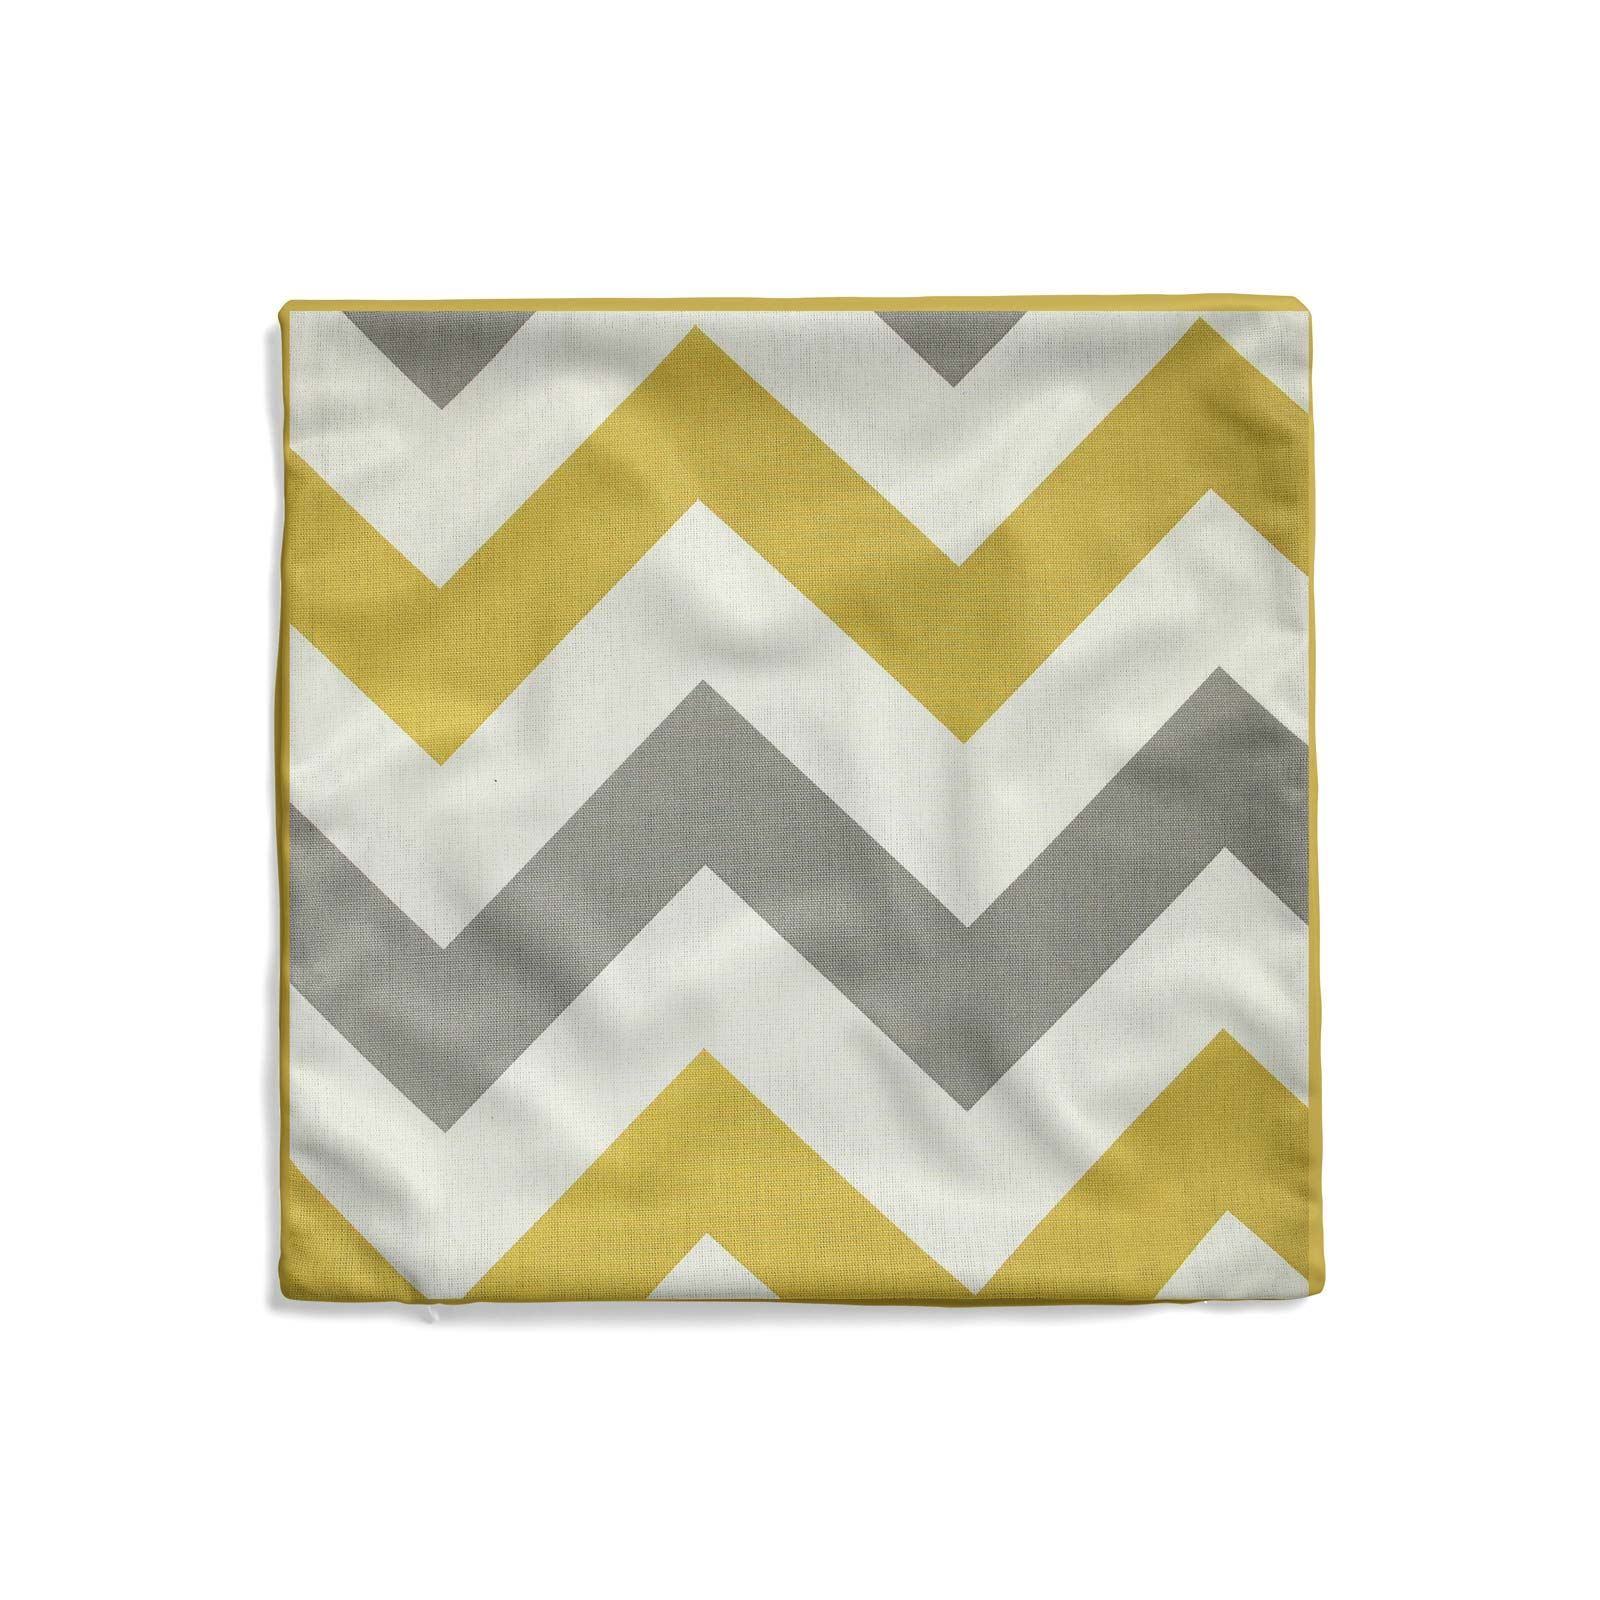 Grey-Ochre-Mustard-Cushion-Cover-Collection-17-034-18-034-Covers-Filled-Cushions thumbnail 52